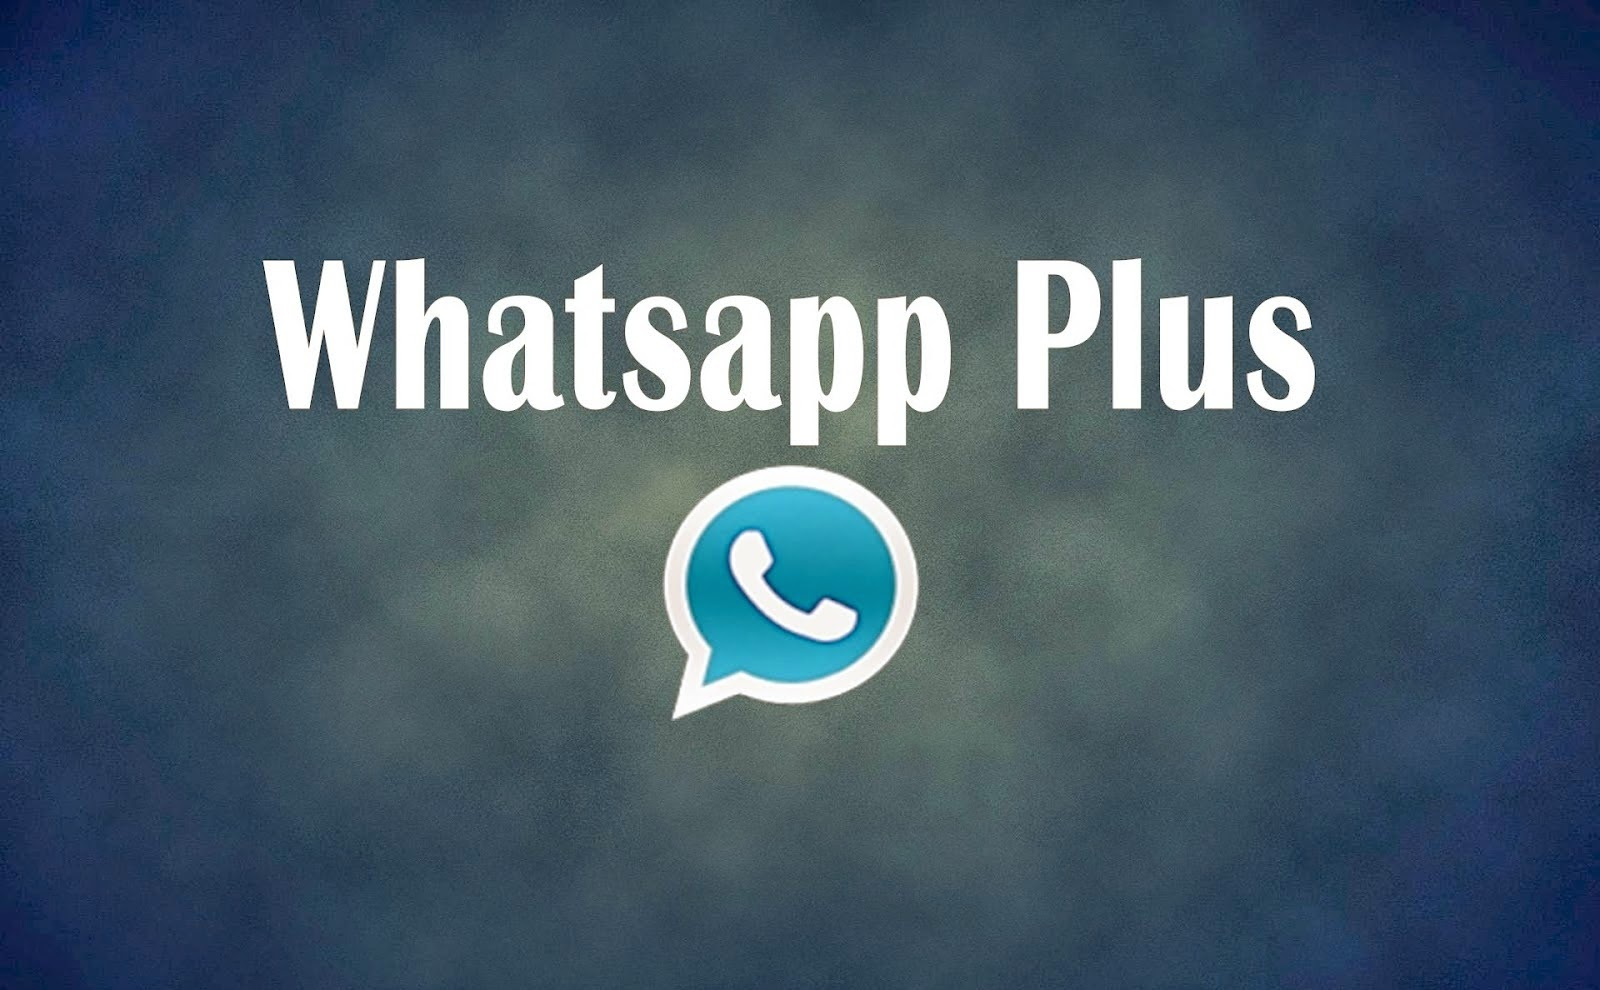 download and install whatsapp plus apk file